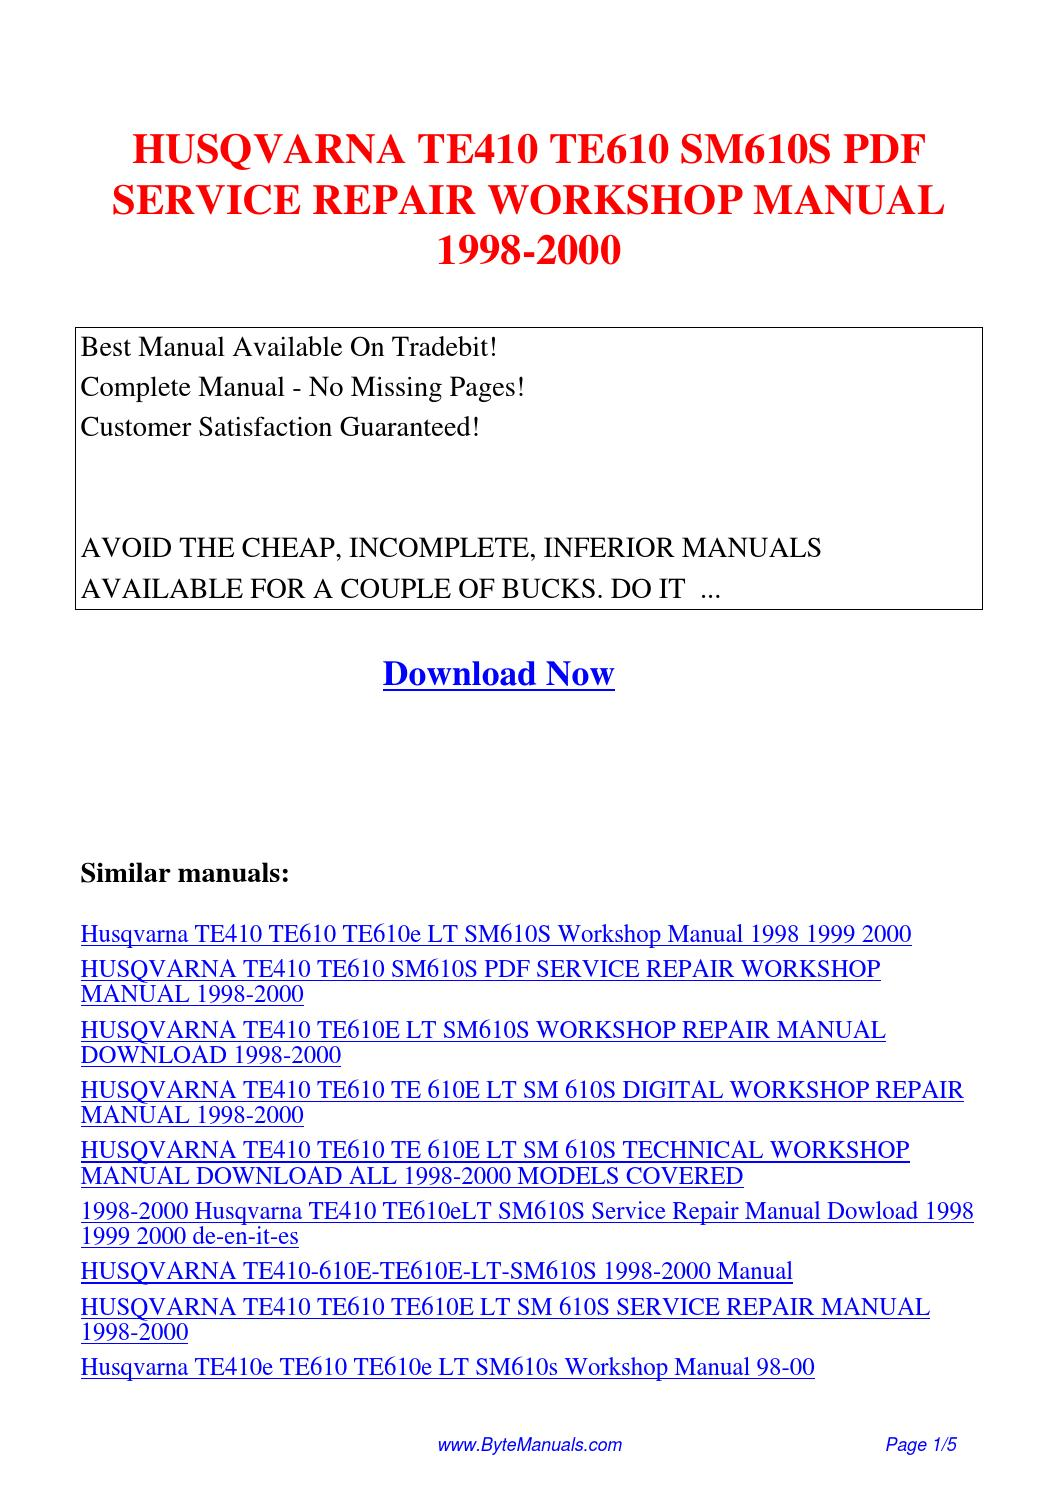 HUSQVARNA TE410 TE610 SM610S SERVICE REPAIR WORKSHOP MANUAL 1998-2000.pdf  by Ging Tang - issuu